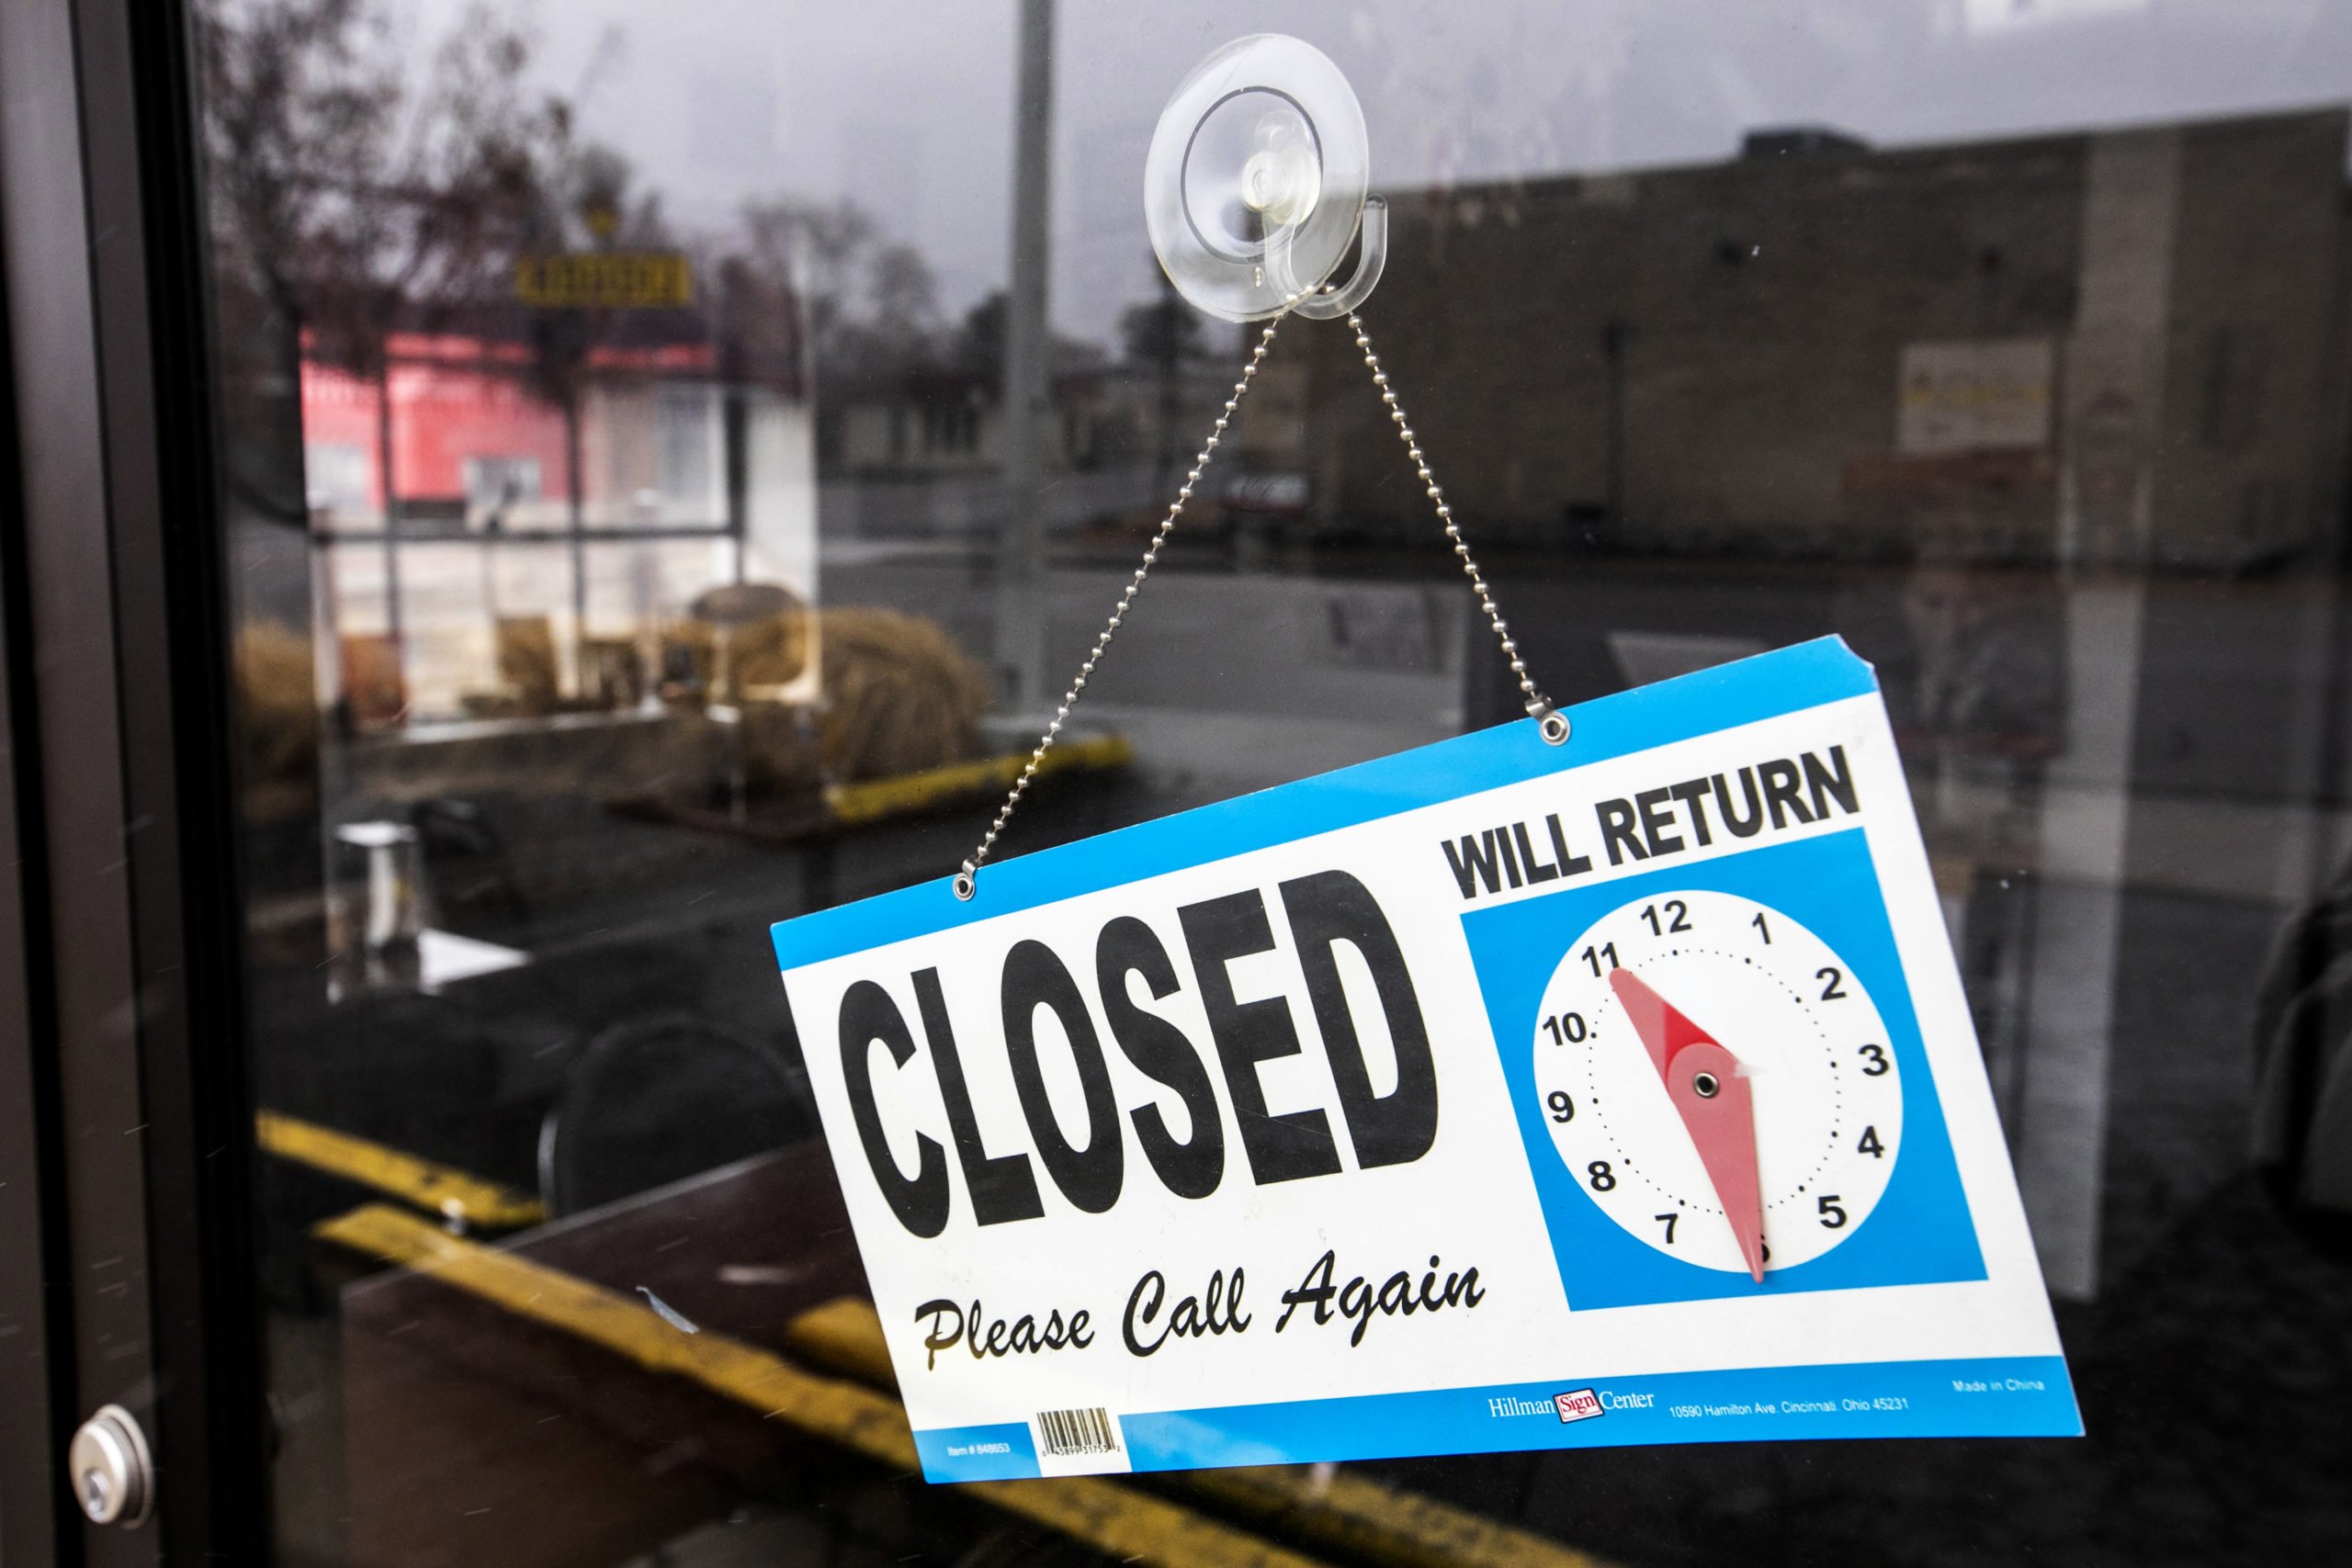 Closed signs are everywhere, and on this restaurant in Englewood, during government-ordered stay-at-home measures to combat the spread of coronavirus. Some restaurants have tried to keep up business by offering to-go, delivery, and curbside pickup menus.